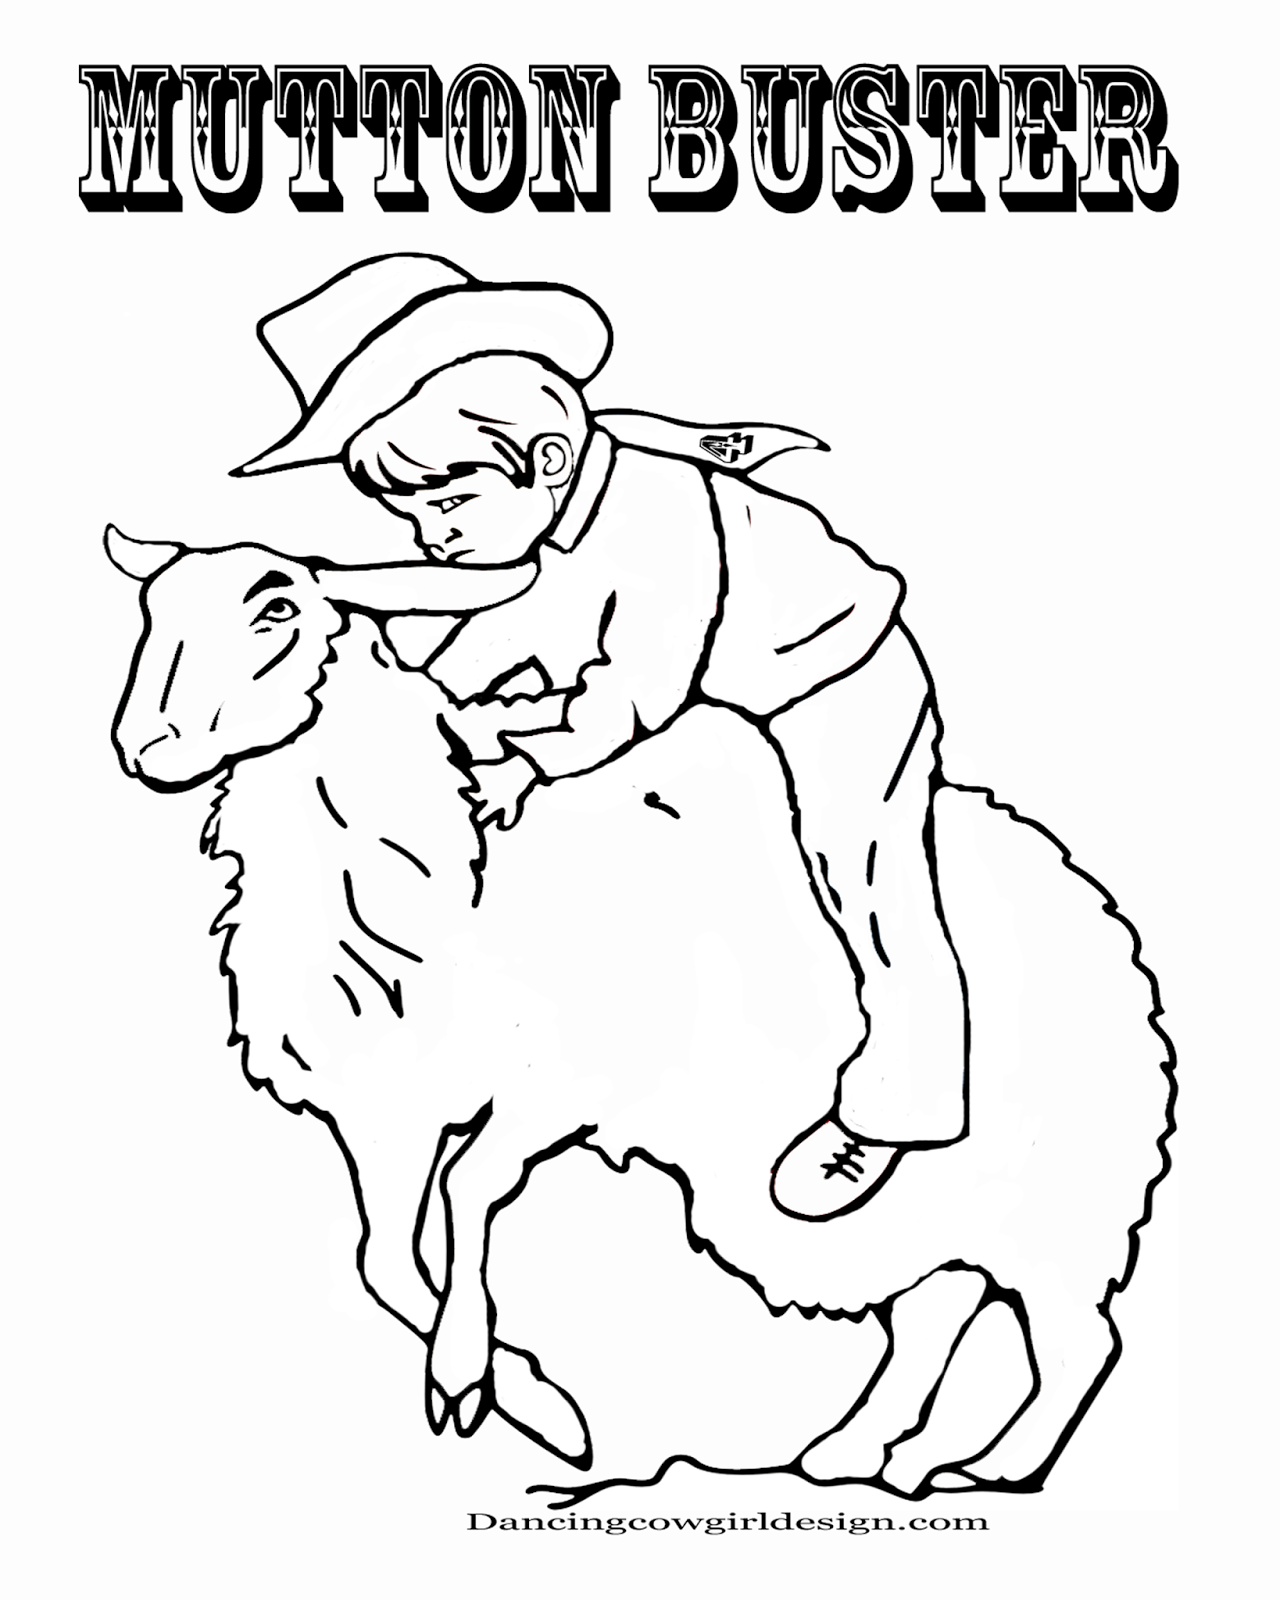 cowboy coloring sheet kid mutton bustin - Rodeo Coloring Pages